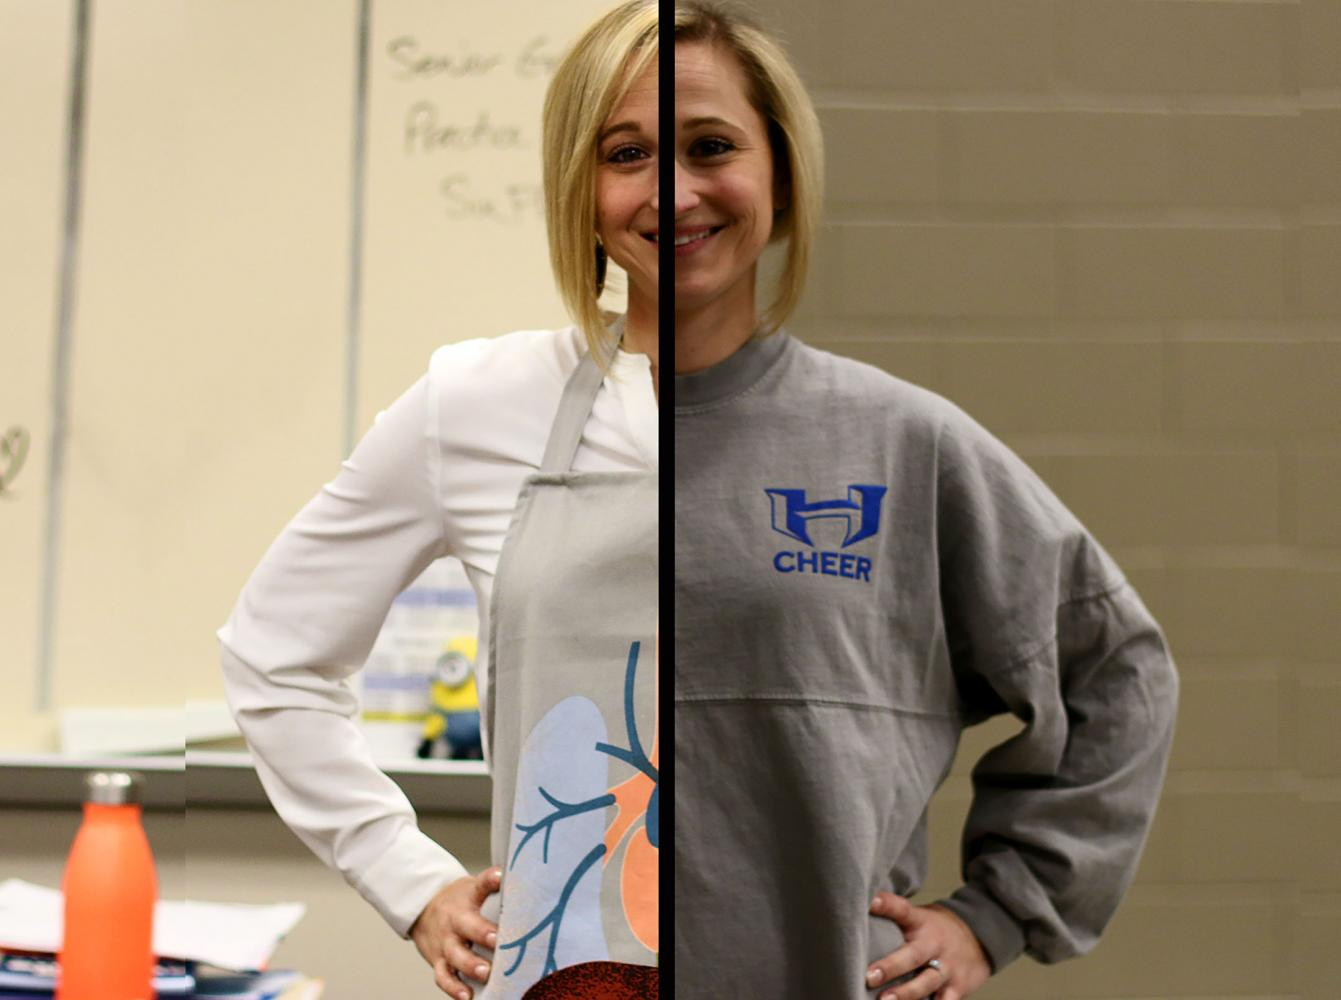 Trepagnier+poses+in+her+anatomy+apron+and+cheer+spirit+wear.+